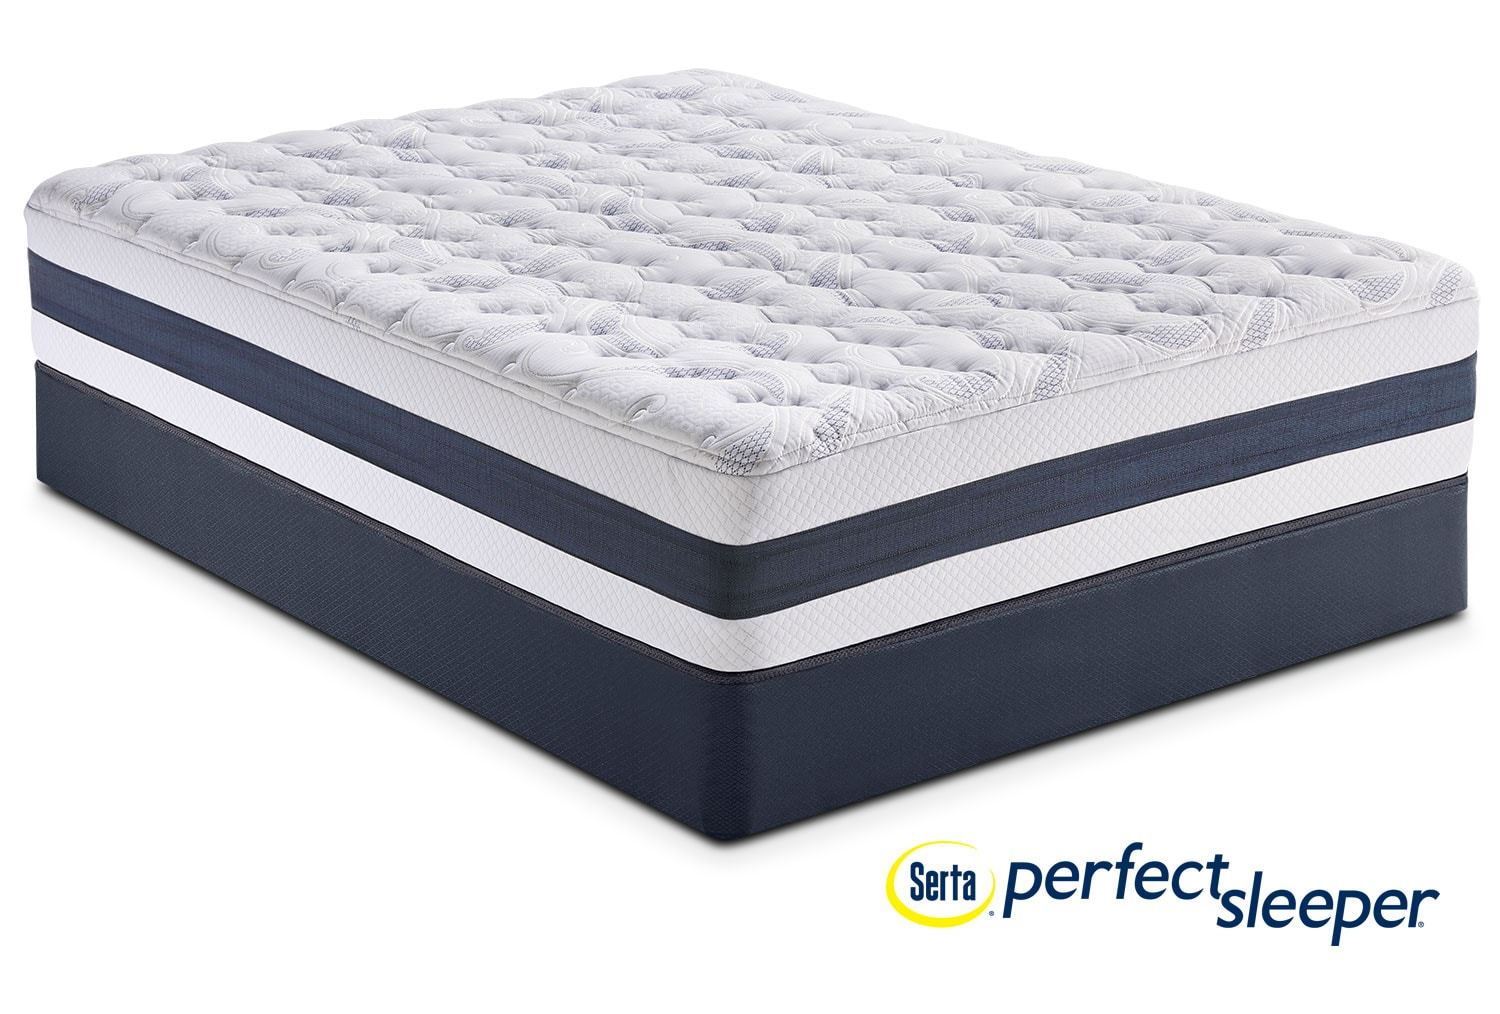 Mattresses and Bedding - Carson Ridge King Mattress and Split Foundation Set